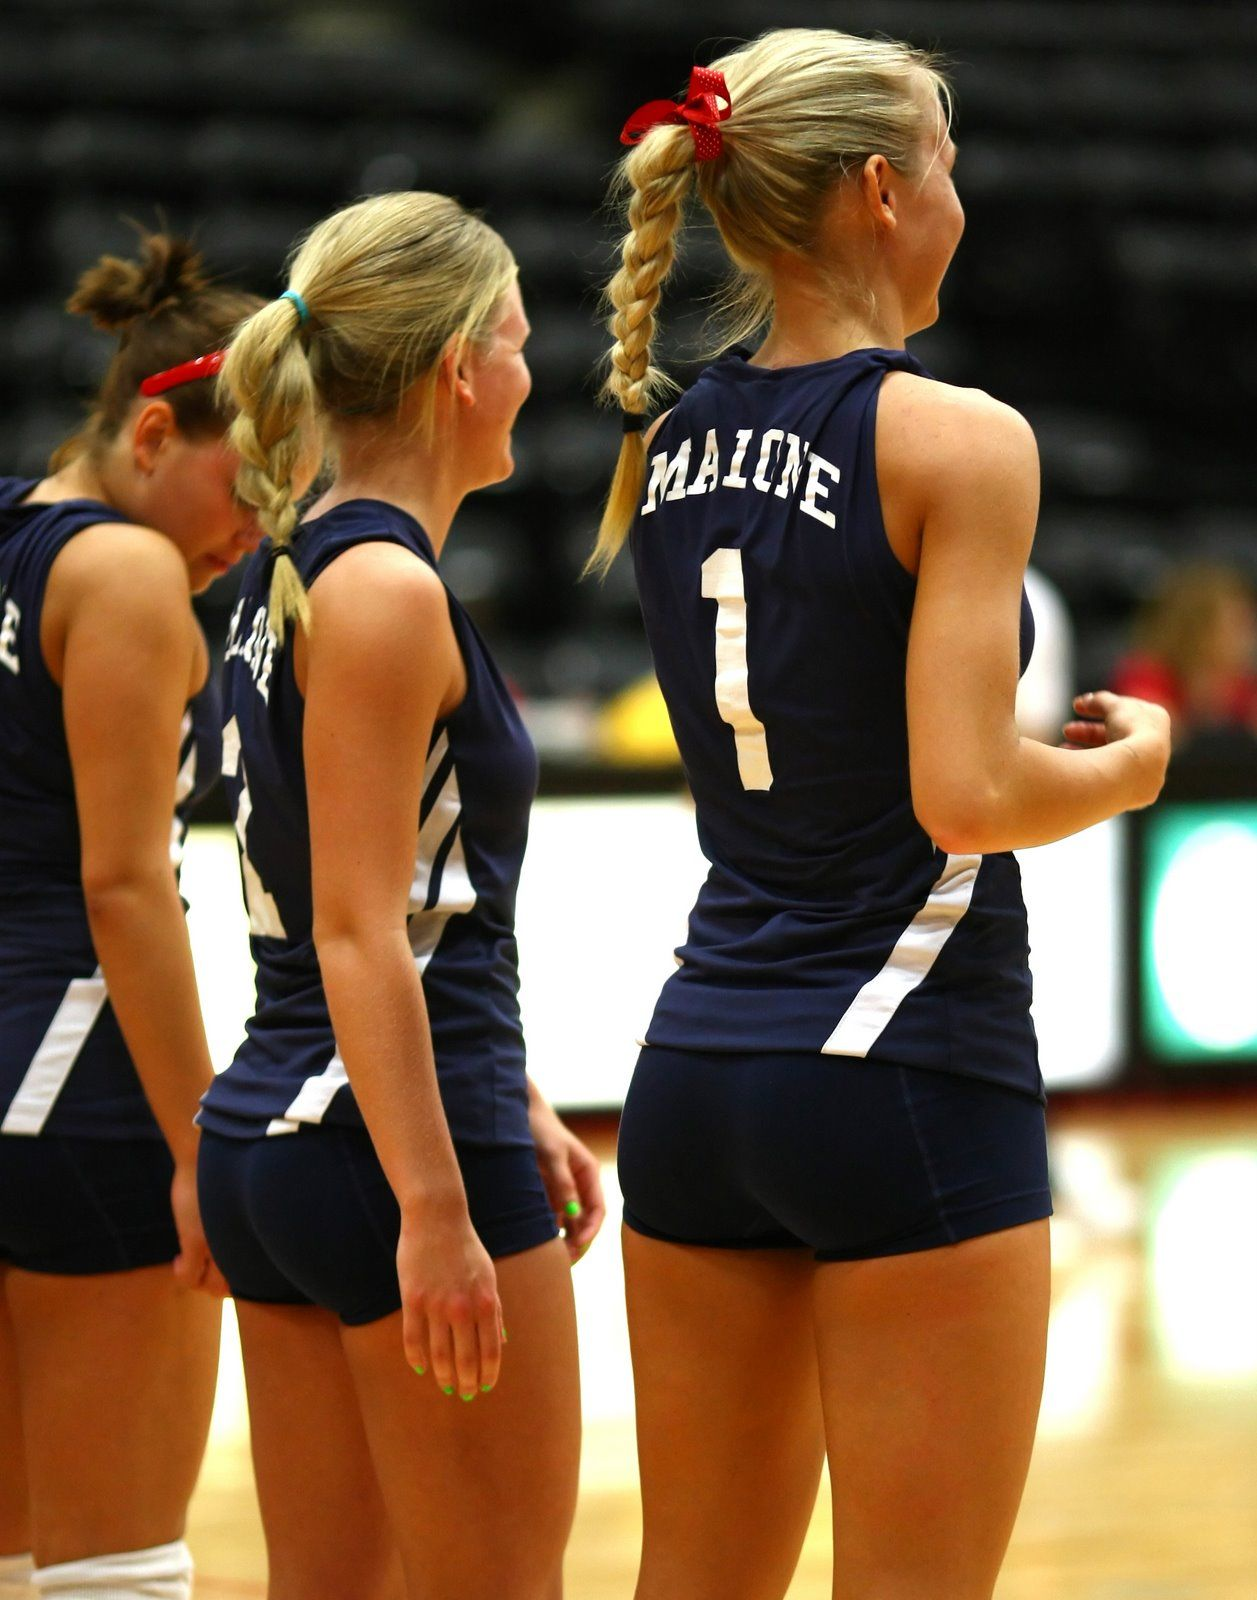 Volleyball, Google and Shorts on Pinterest